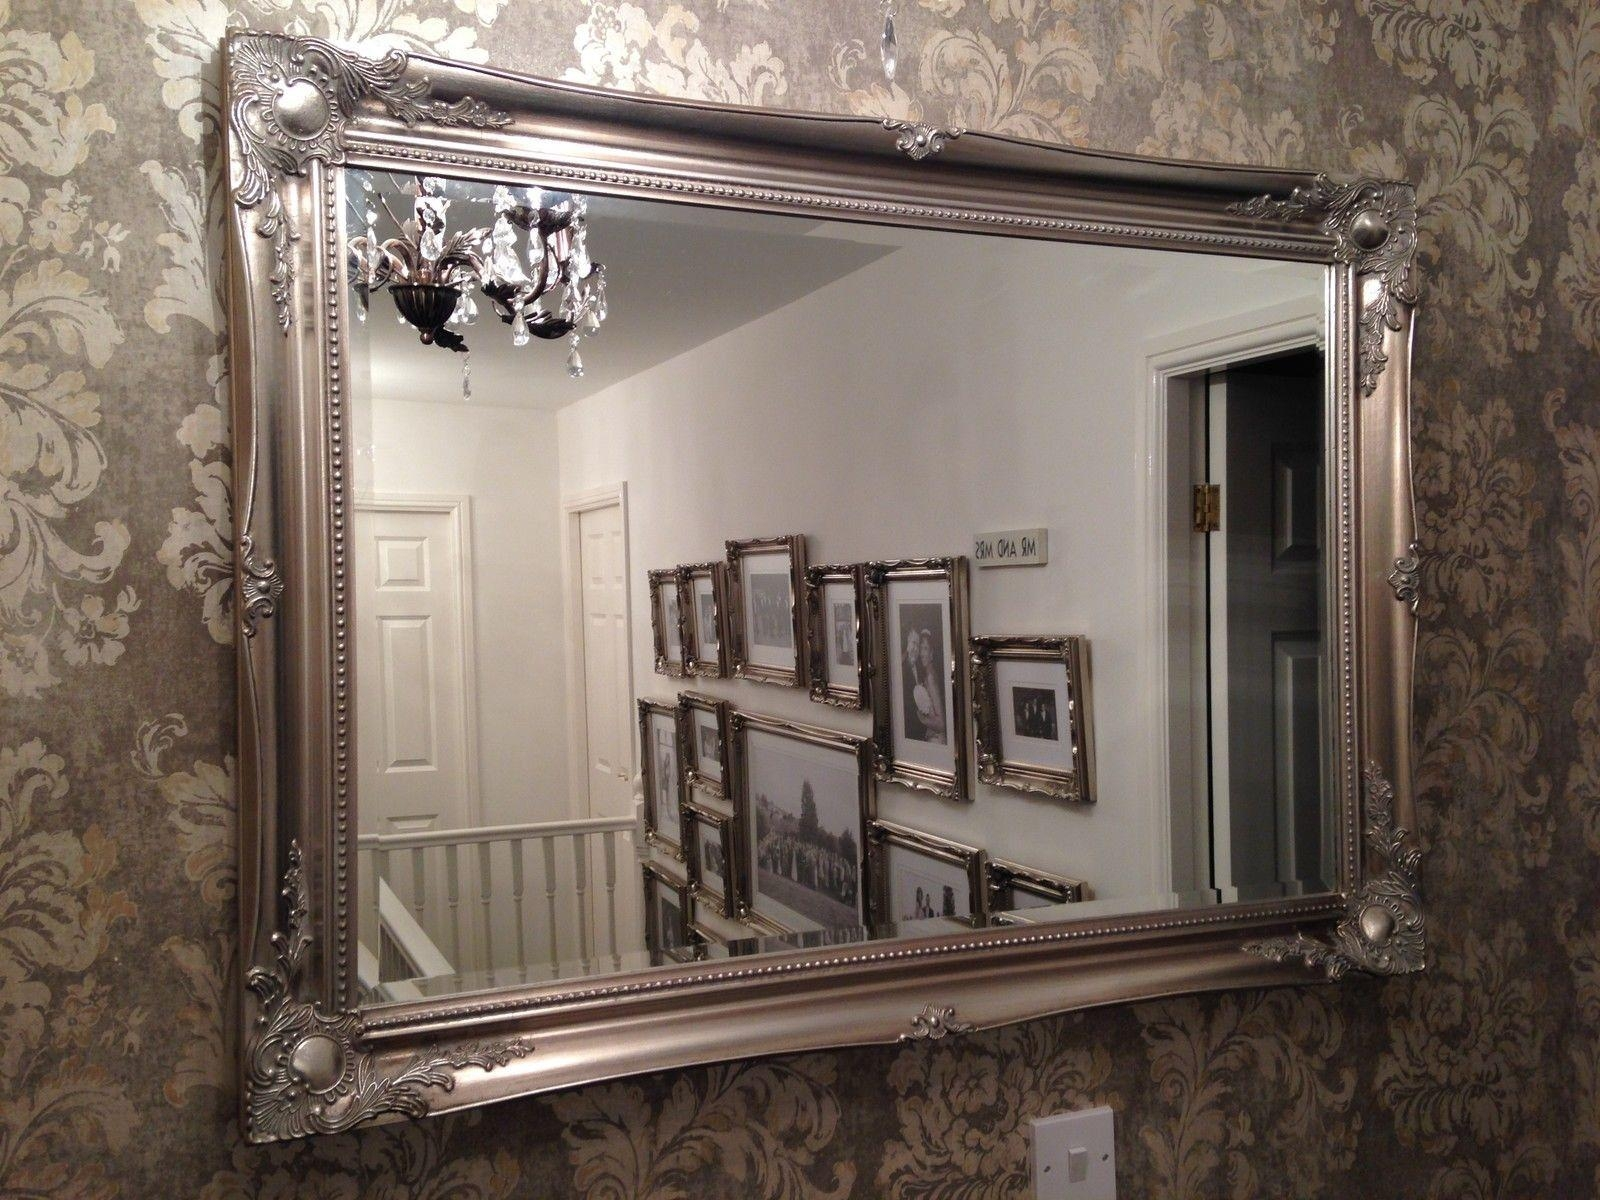 Large Antique Wall Mirror Ornate Frame Antique Ornate Wall Mirrors Inside Vintage Large Mirrors (Photo 9 of 20)